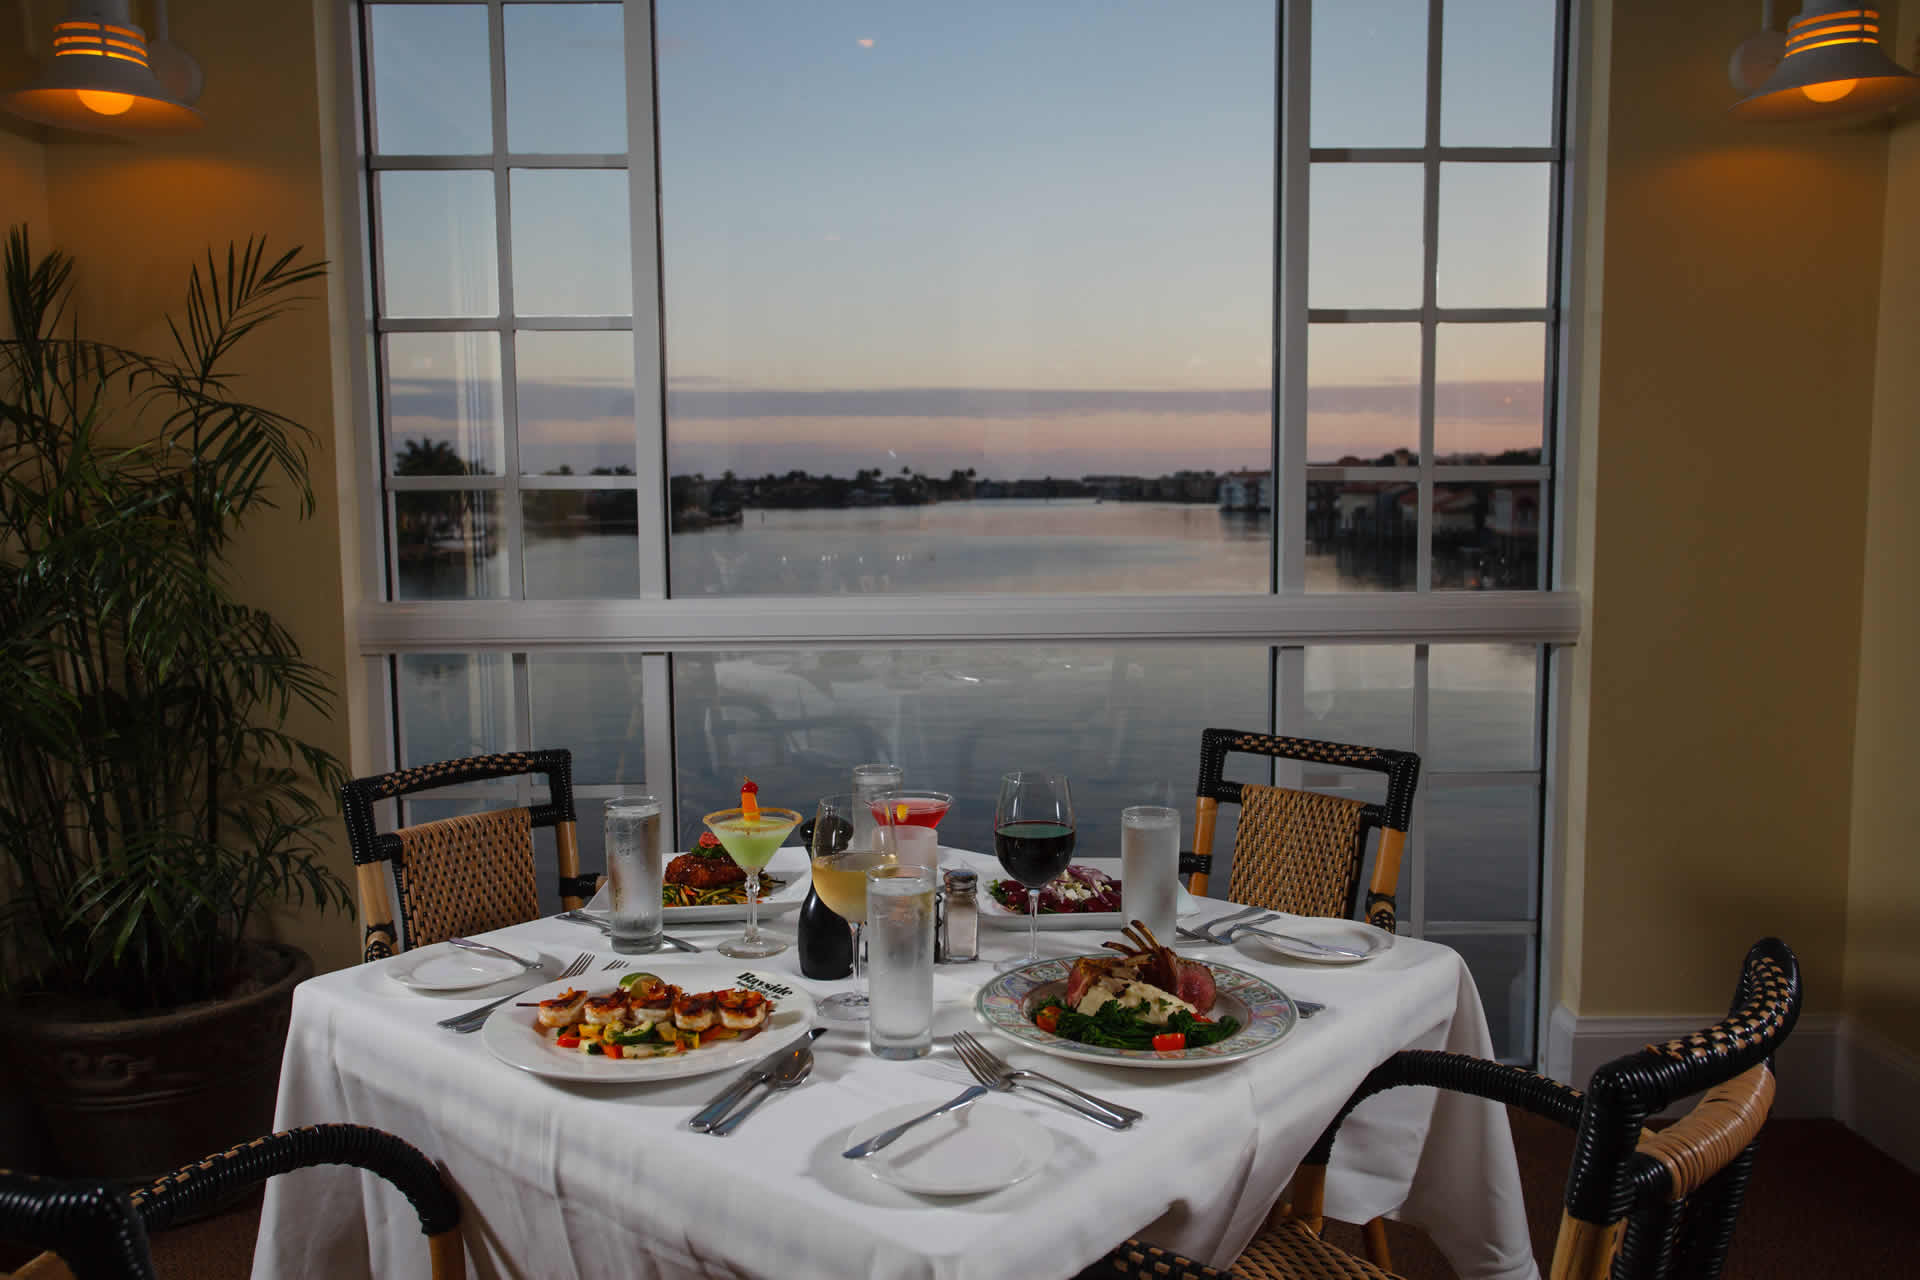 Dinner Table at Bayside Overlooking Bay